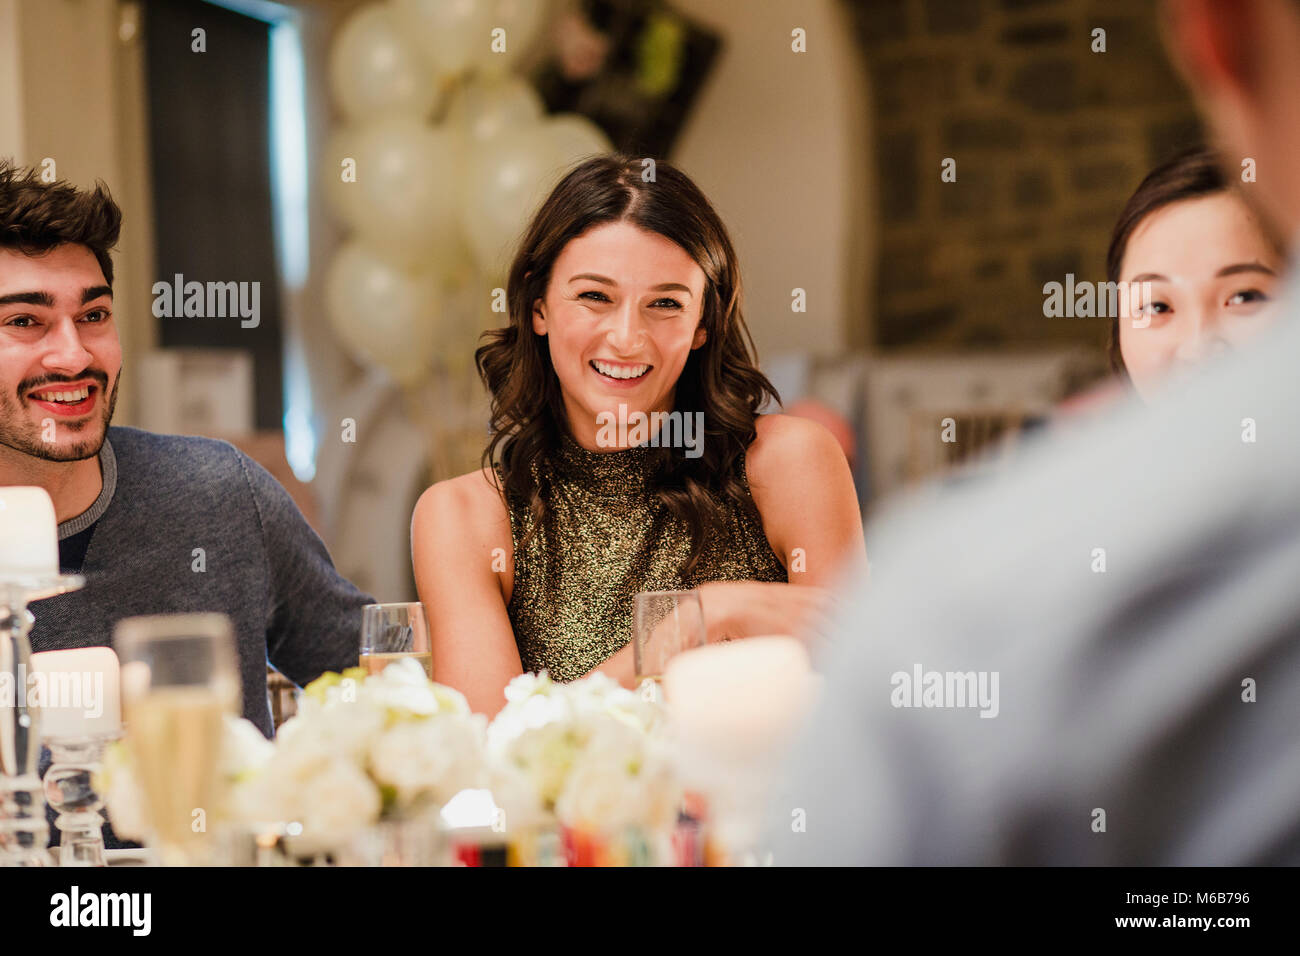 Wedding guests are socialising at the dinner party. - Stock Image